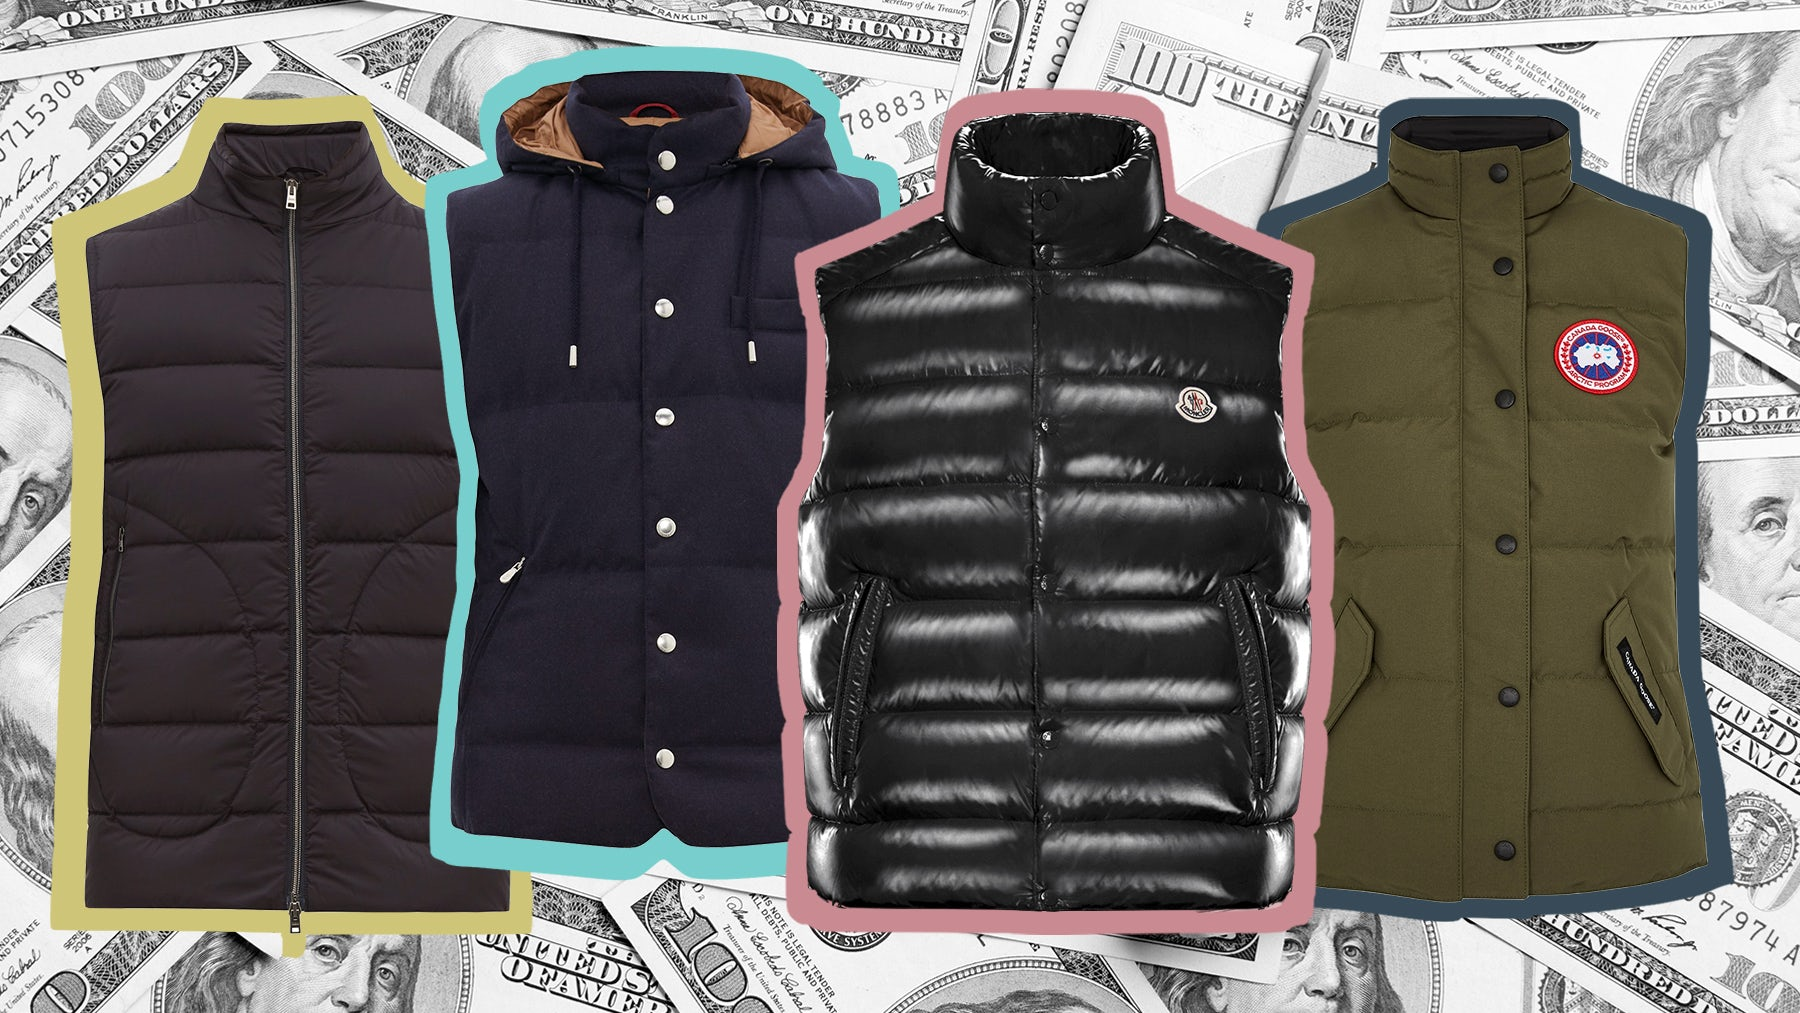 How the Puffy Vest Became a Symbol of Power